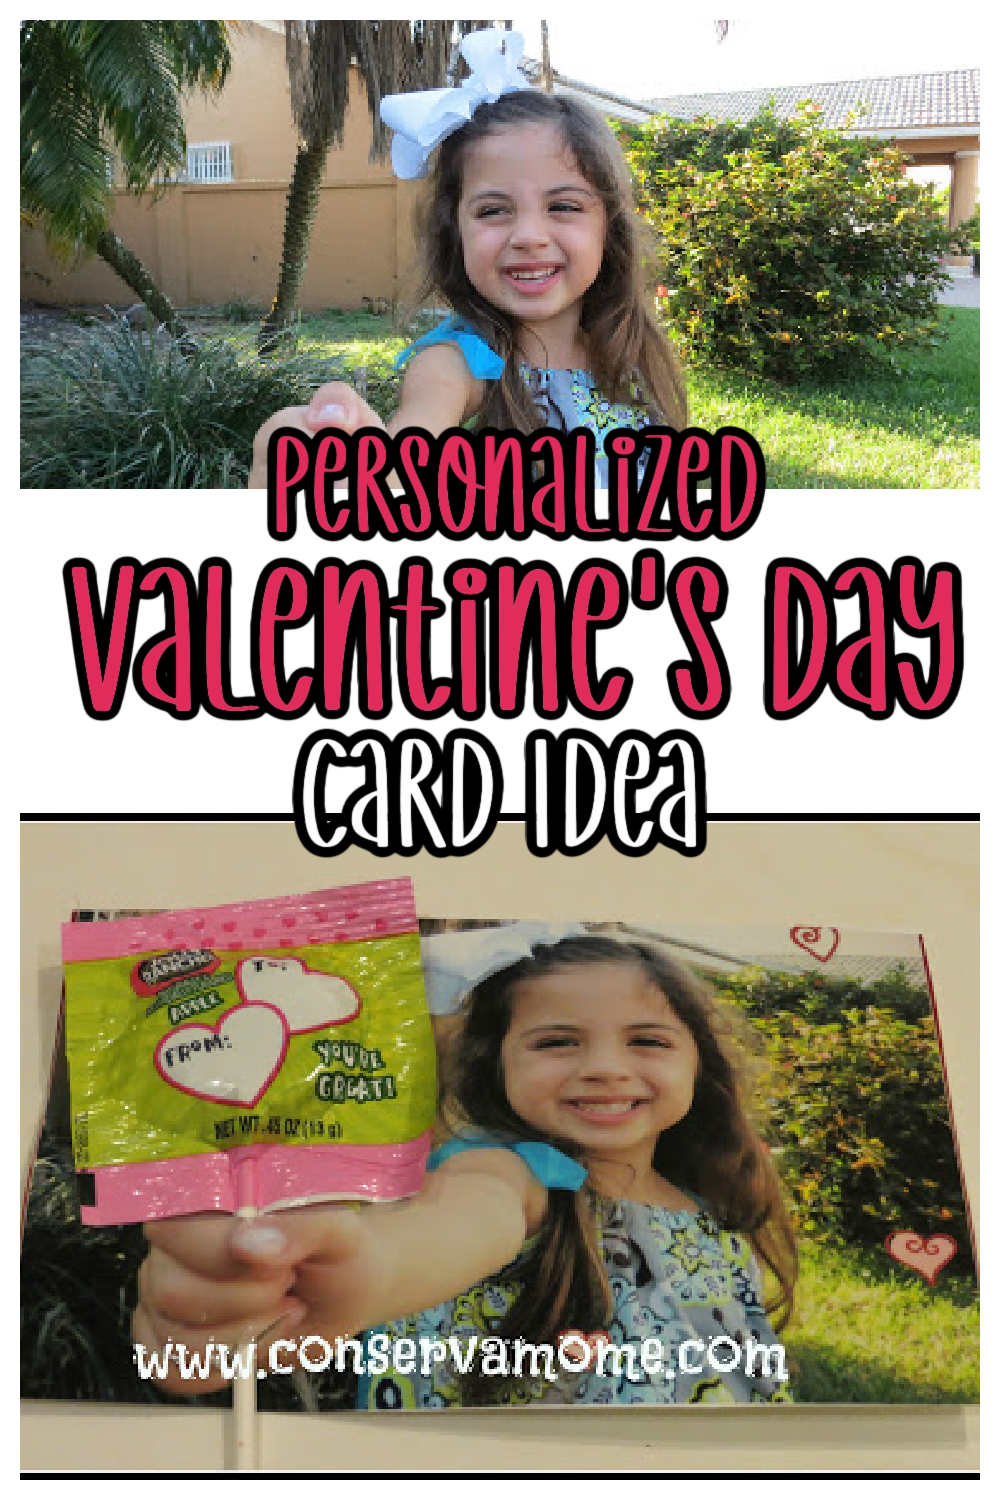 Personalized Valentine's Day Card Ideas